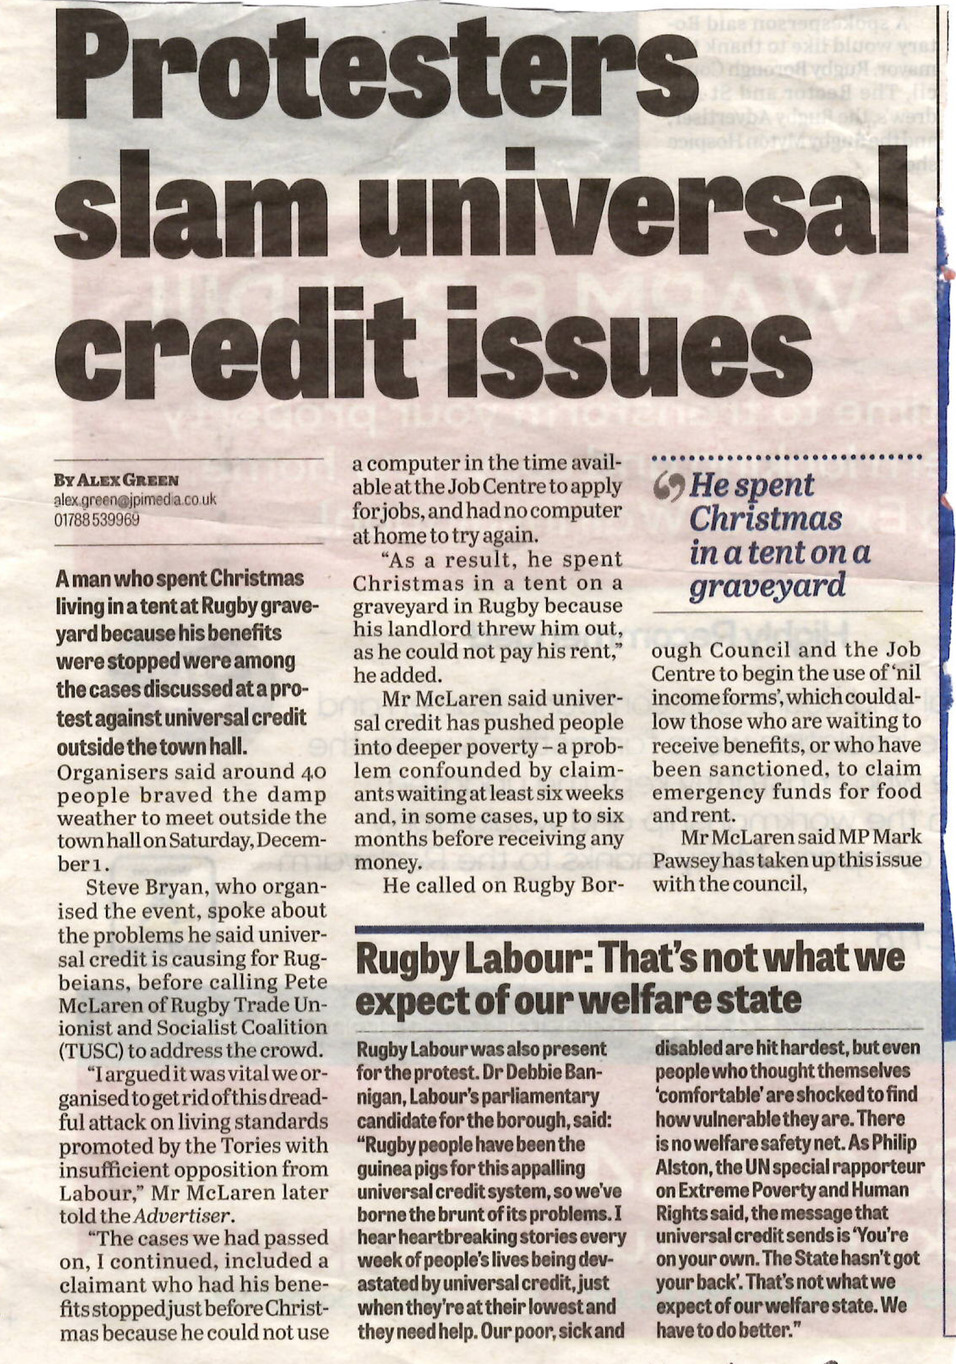 Rugby TUSC supports protest against Universal Credit